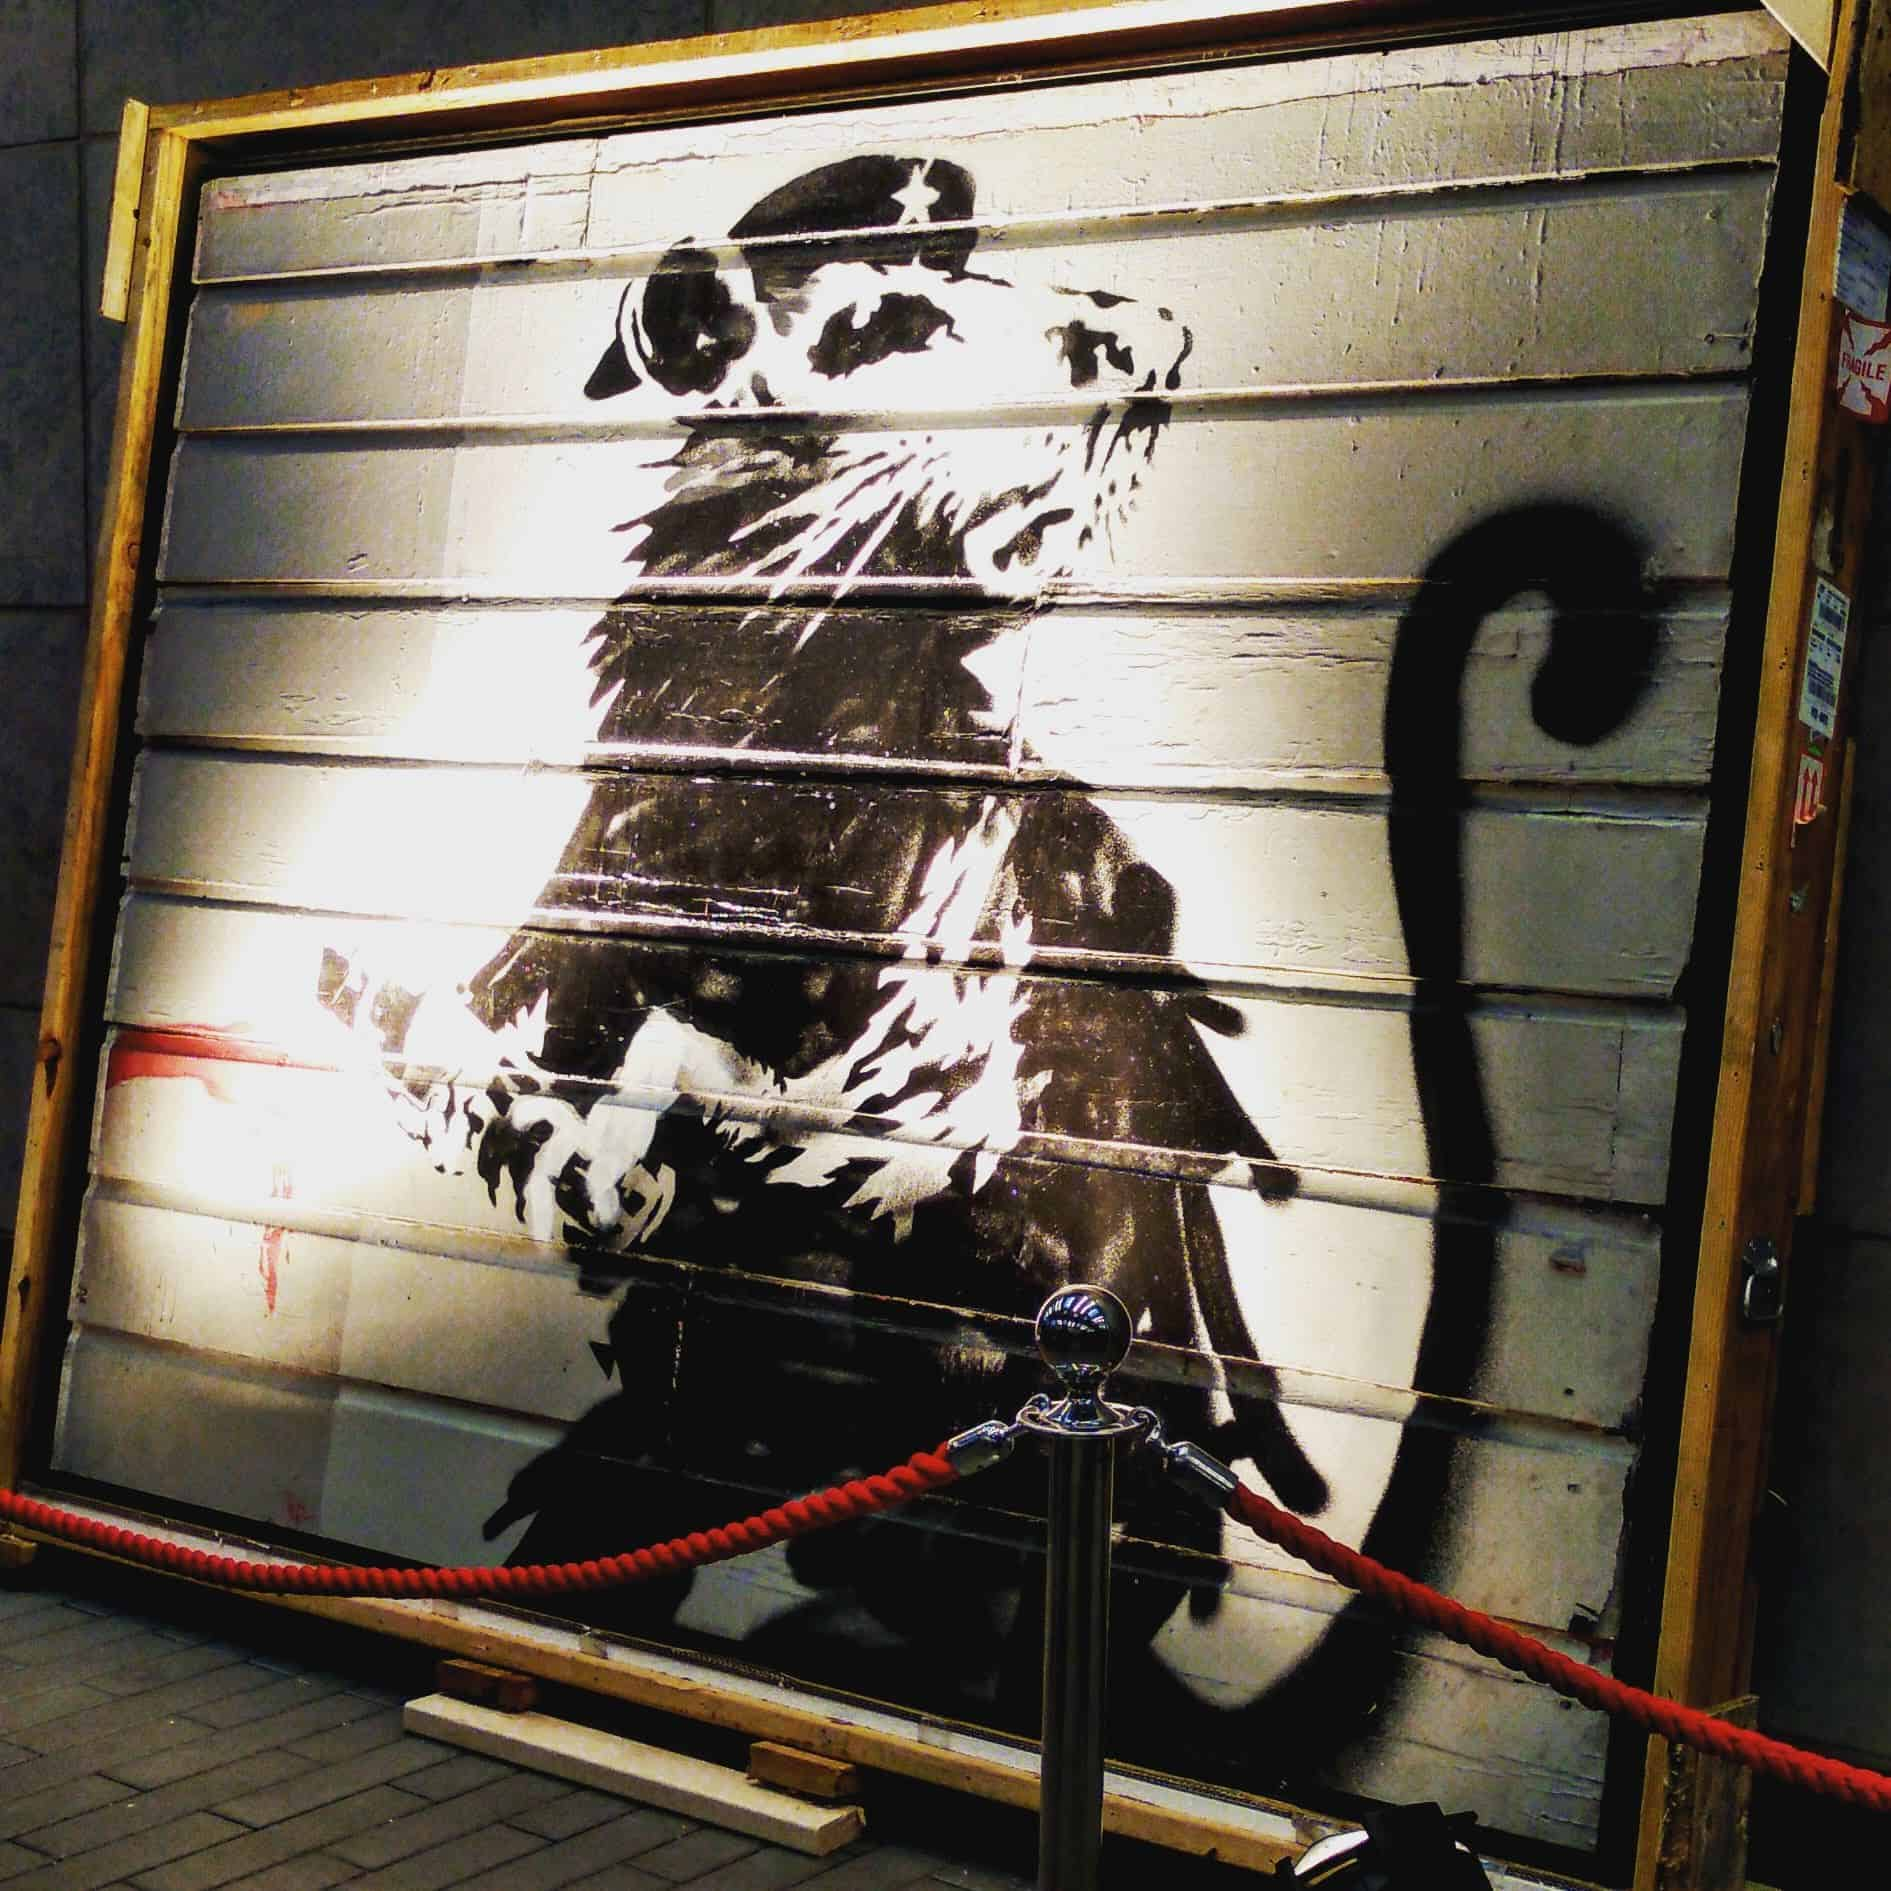 World Reknowned Graffiti Artist Banksy - Rat